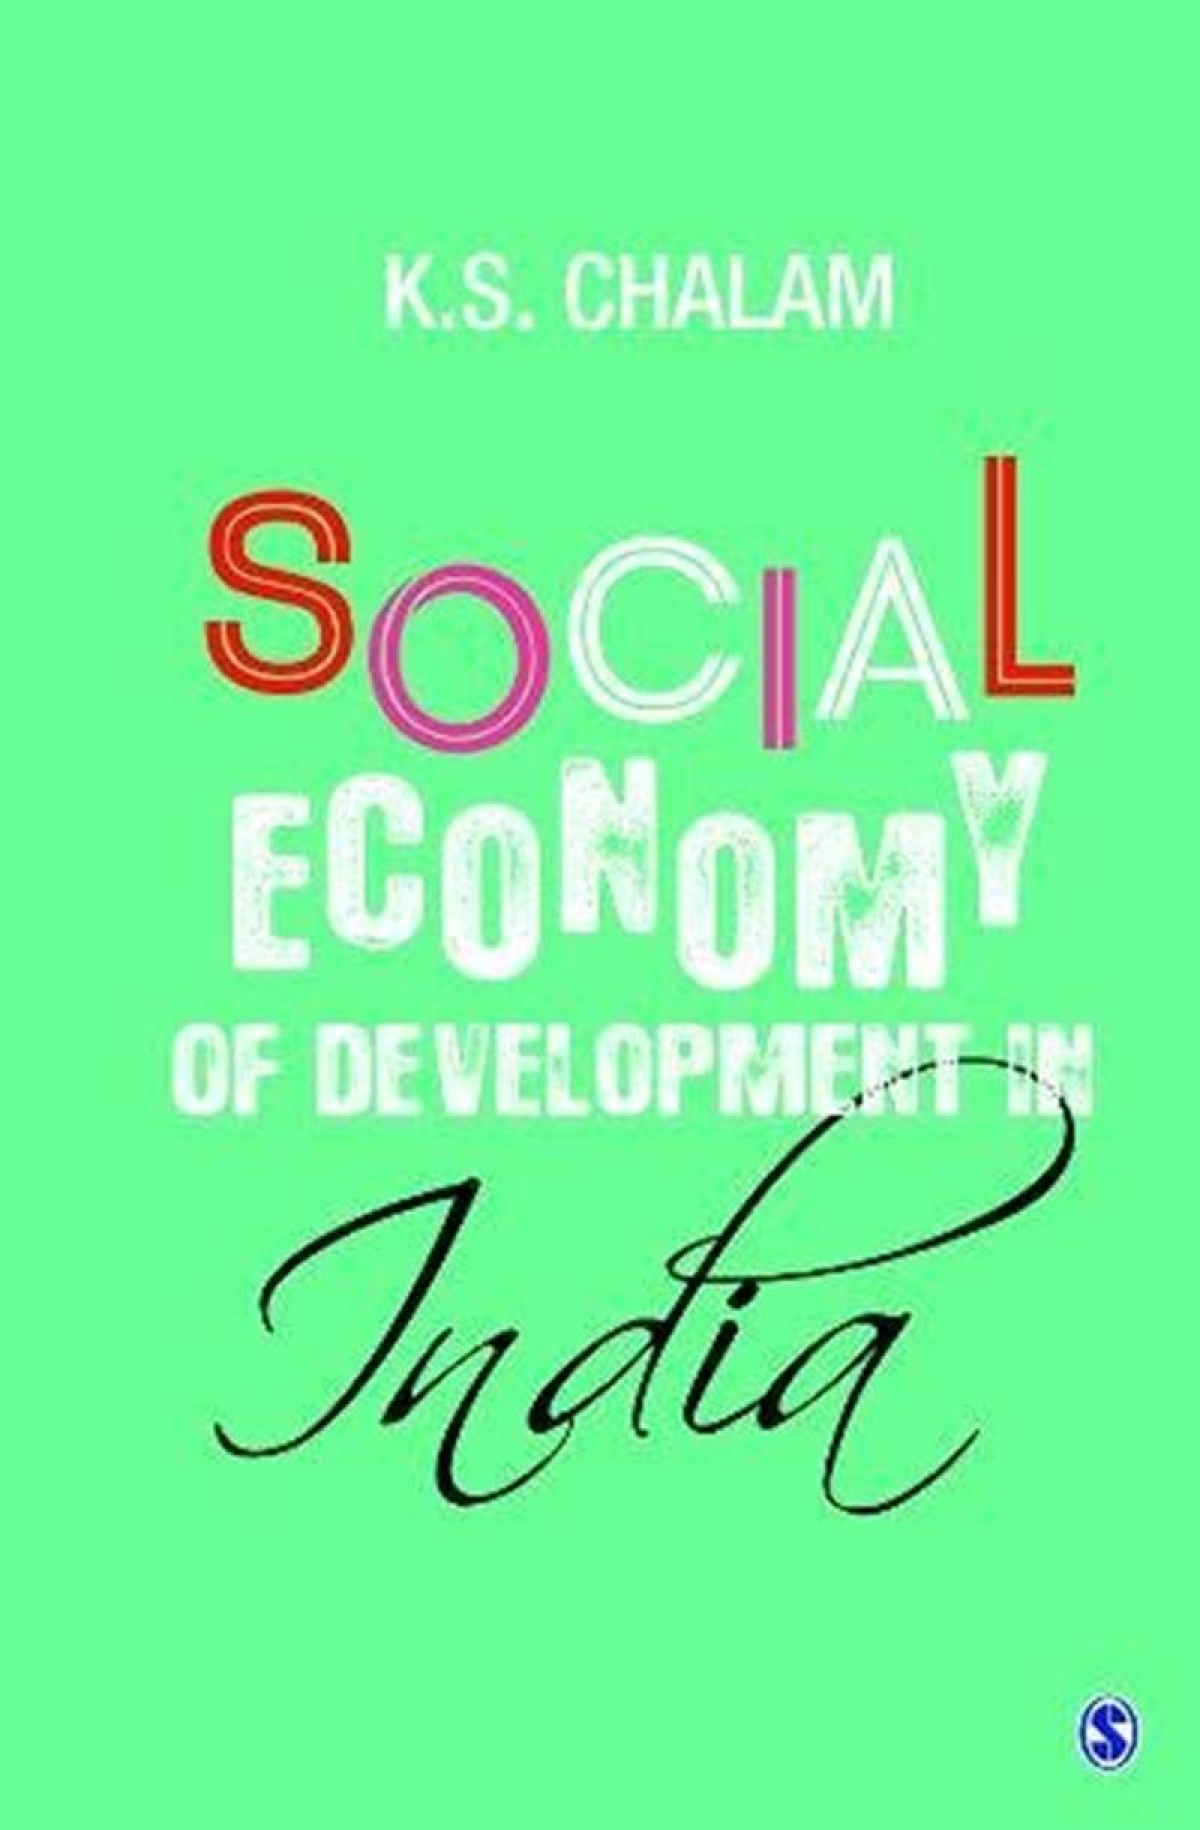 Social Economy Of Development In India by K.S. Chalam: Review